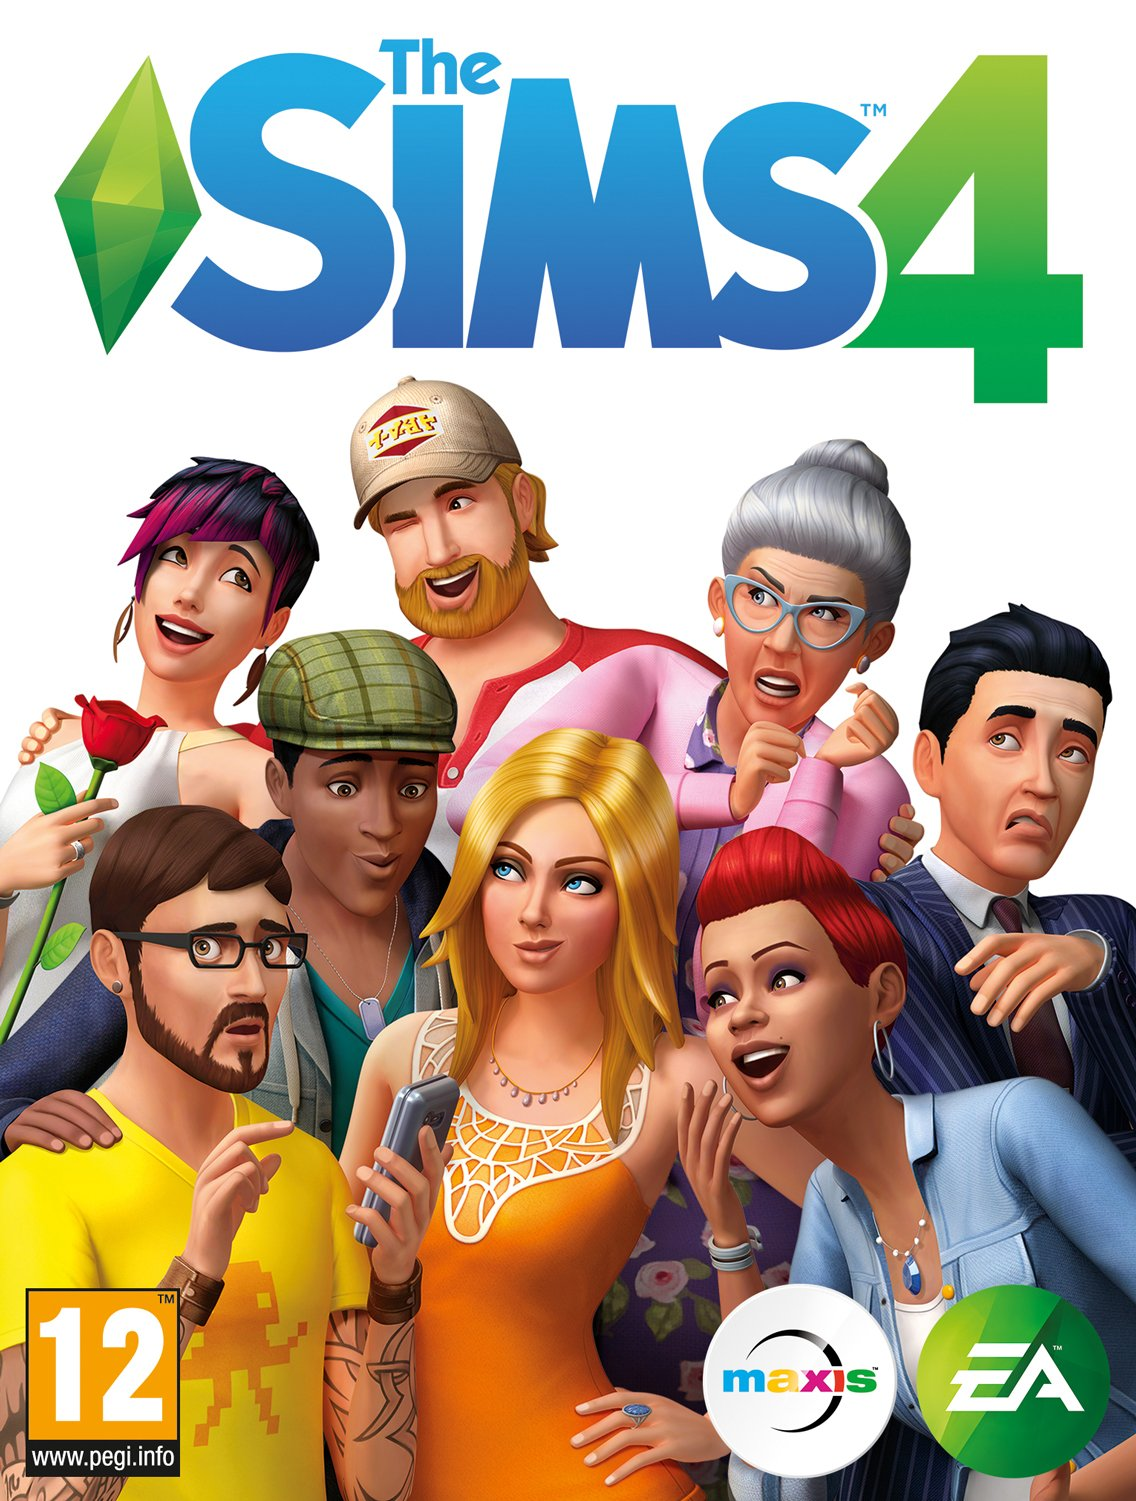 The Sims 4: Deluxe Edition [v 1.47.51.1020] (2014) PC  RePack от xatab